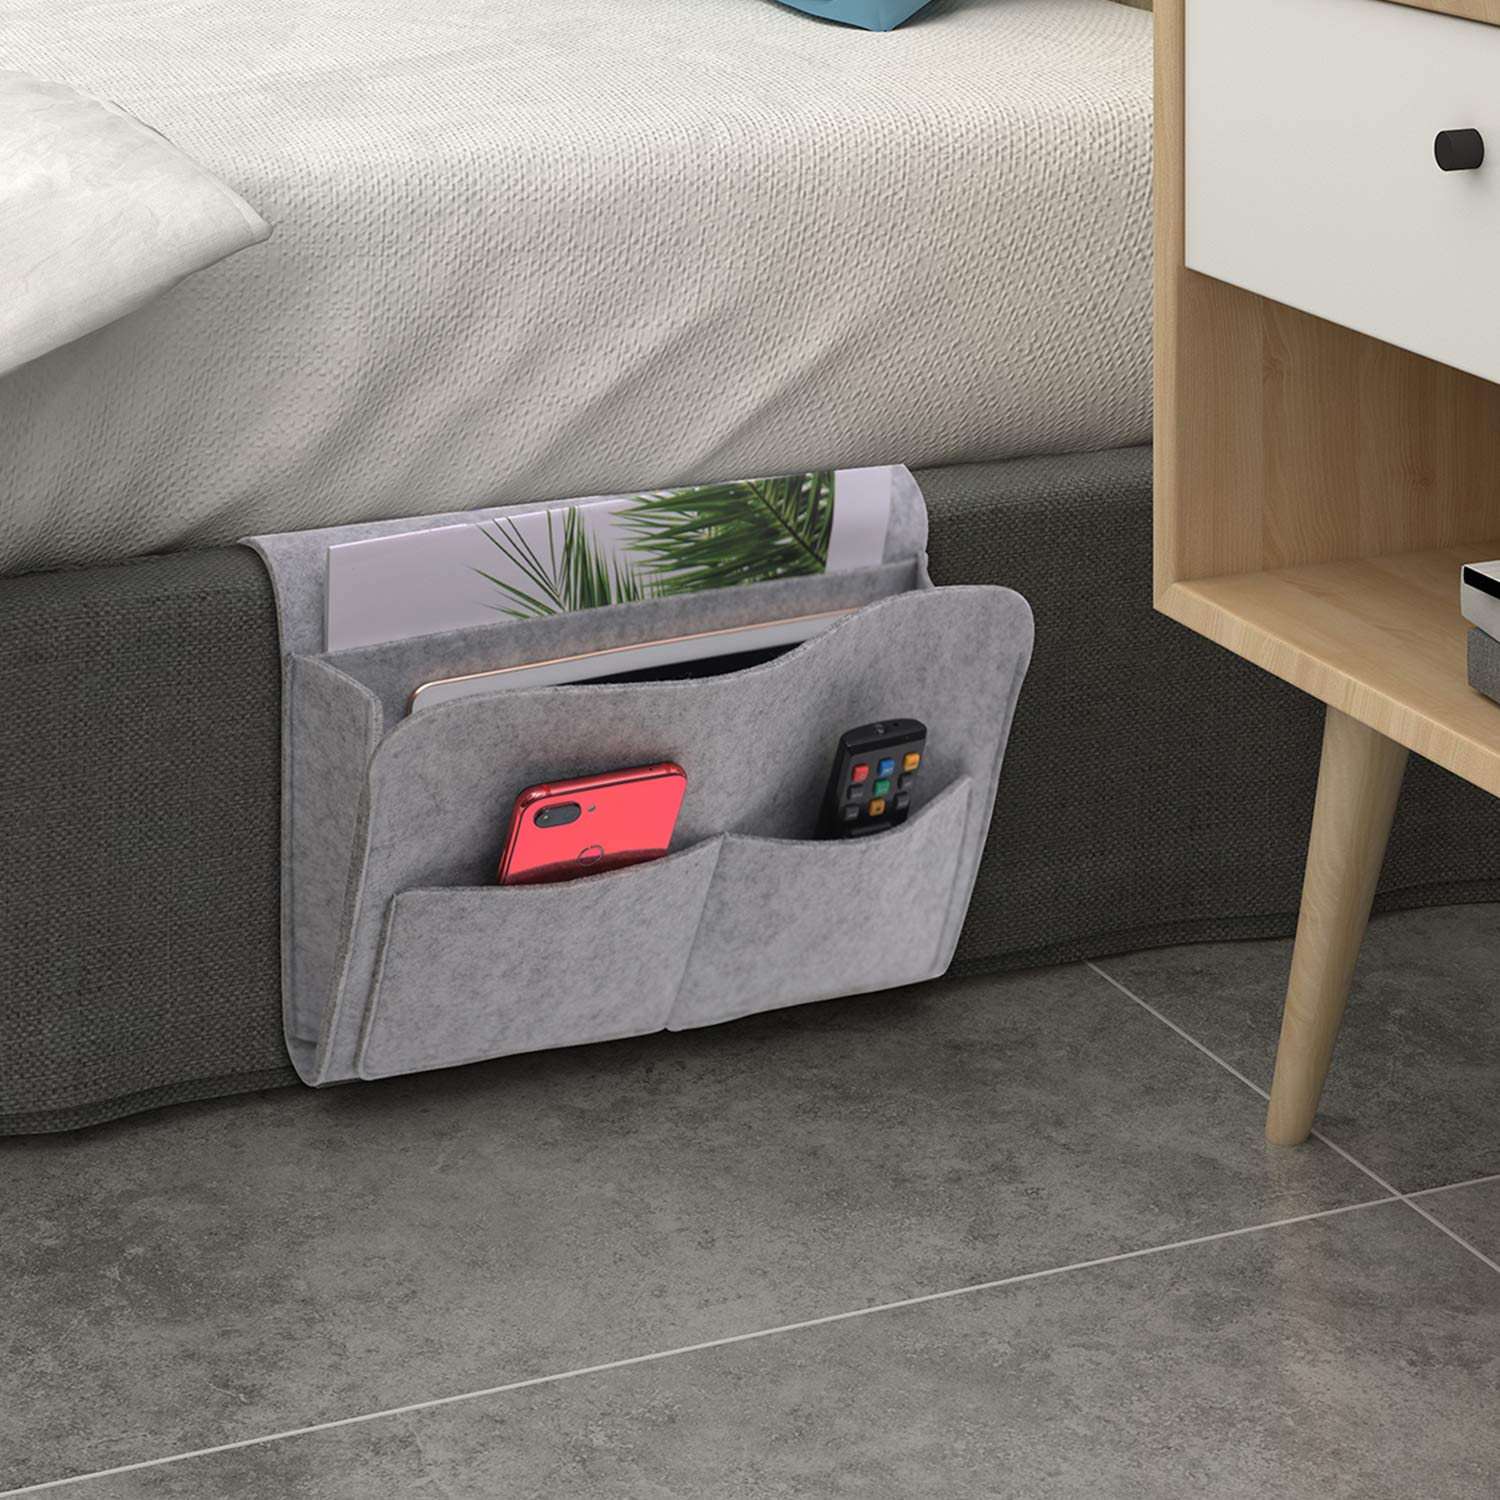 CHIFONG Bedside Caddy, Bedside Storage Organizer, Under Couch Table Mattress, Book Remote Glasses Caddy